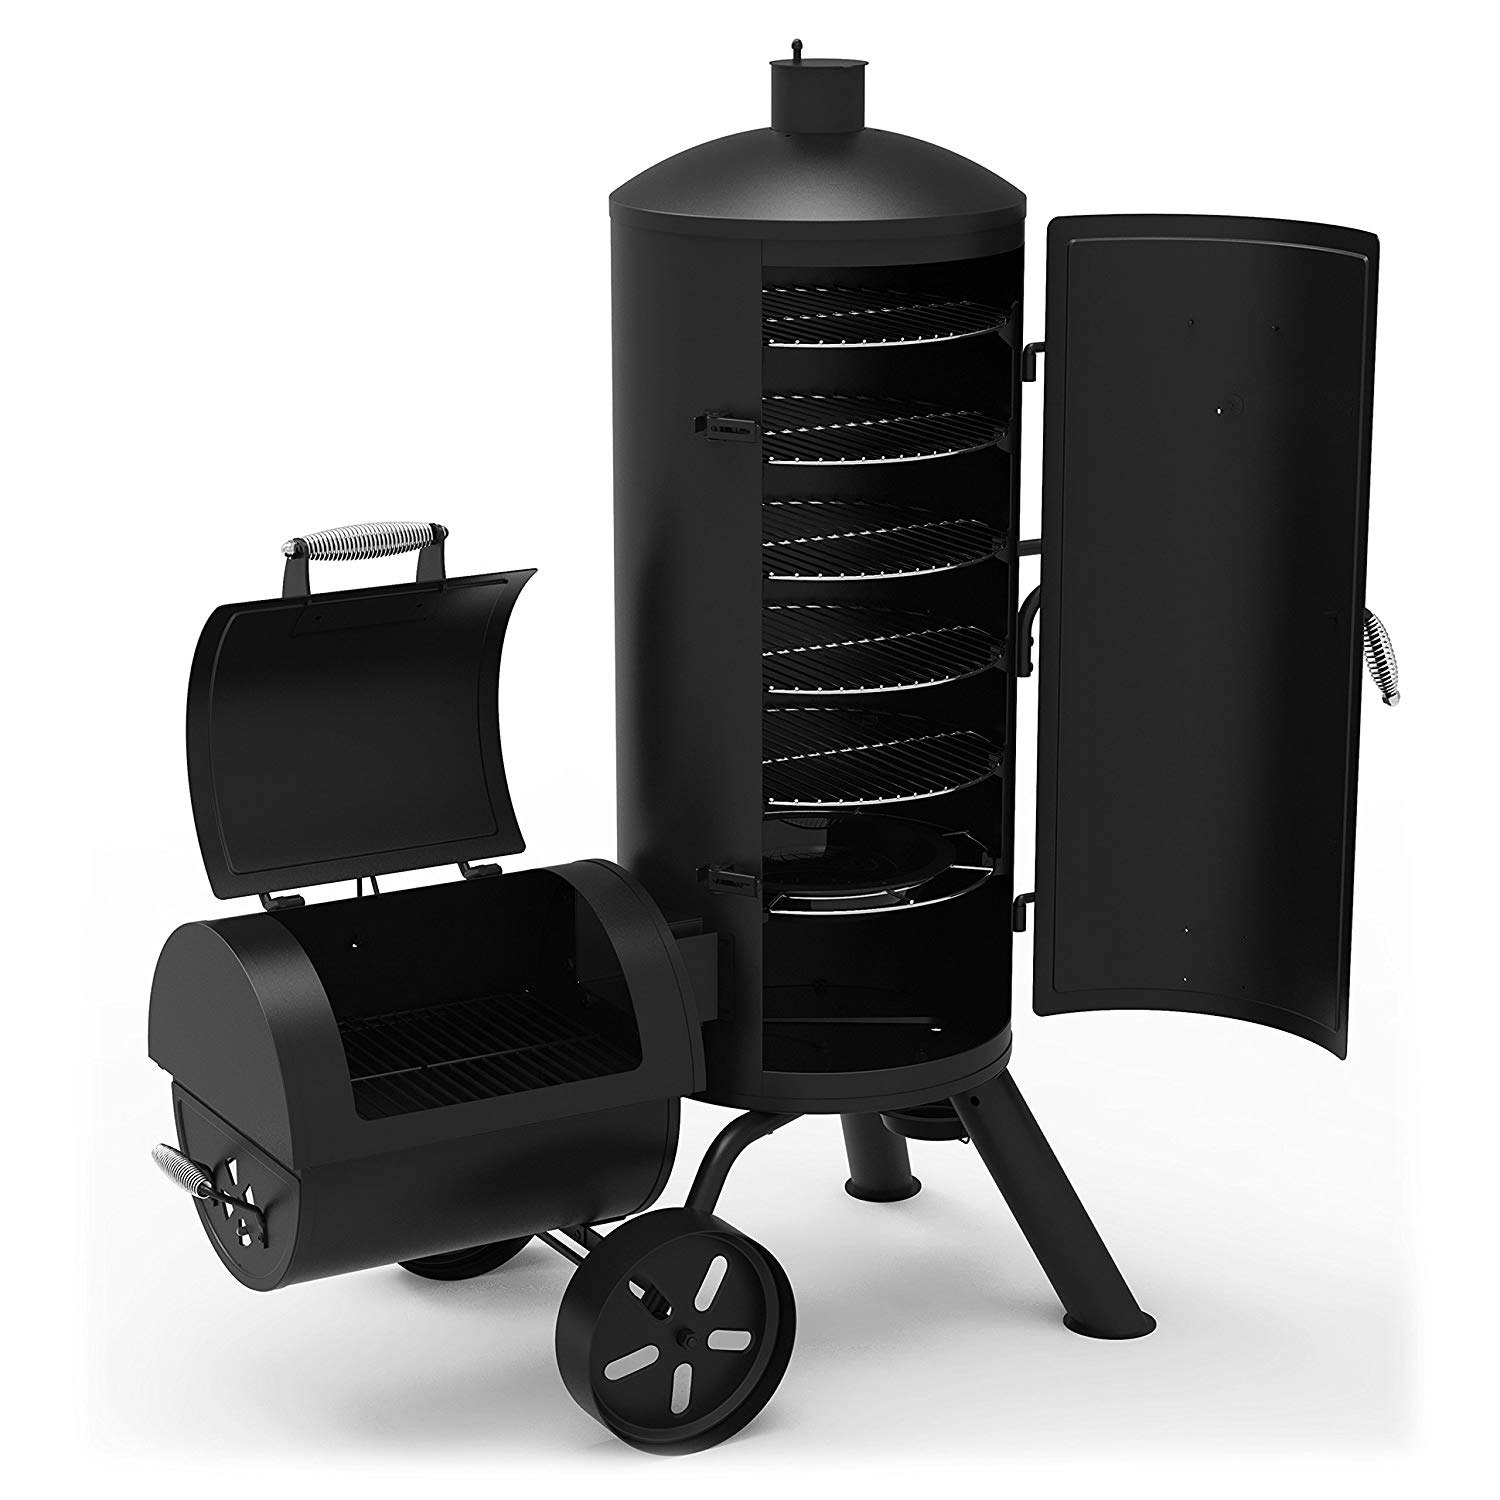 Dyna-Glo Signature Series DGSS1382VCS-D Heavy-Duty Vertical Offset Charcoal Smoker Review